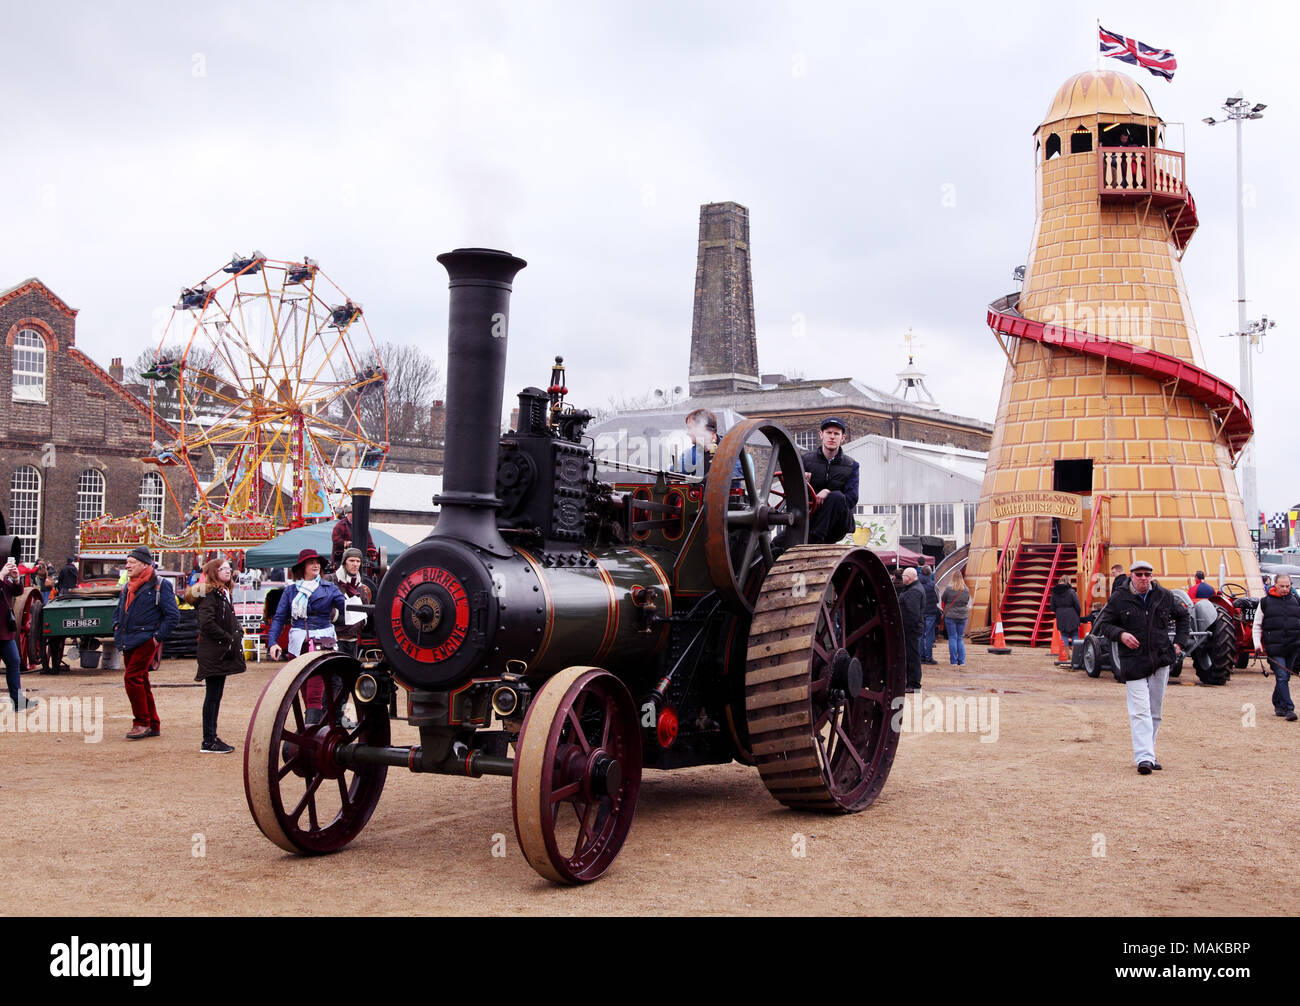 A steam roller at the Festival of Steam and Transport in Chatham Historic Dockyard, Kent, UK. Easter 2018. - Stock Image